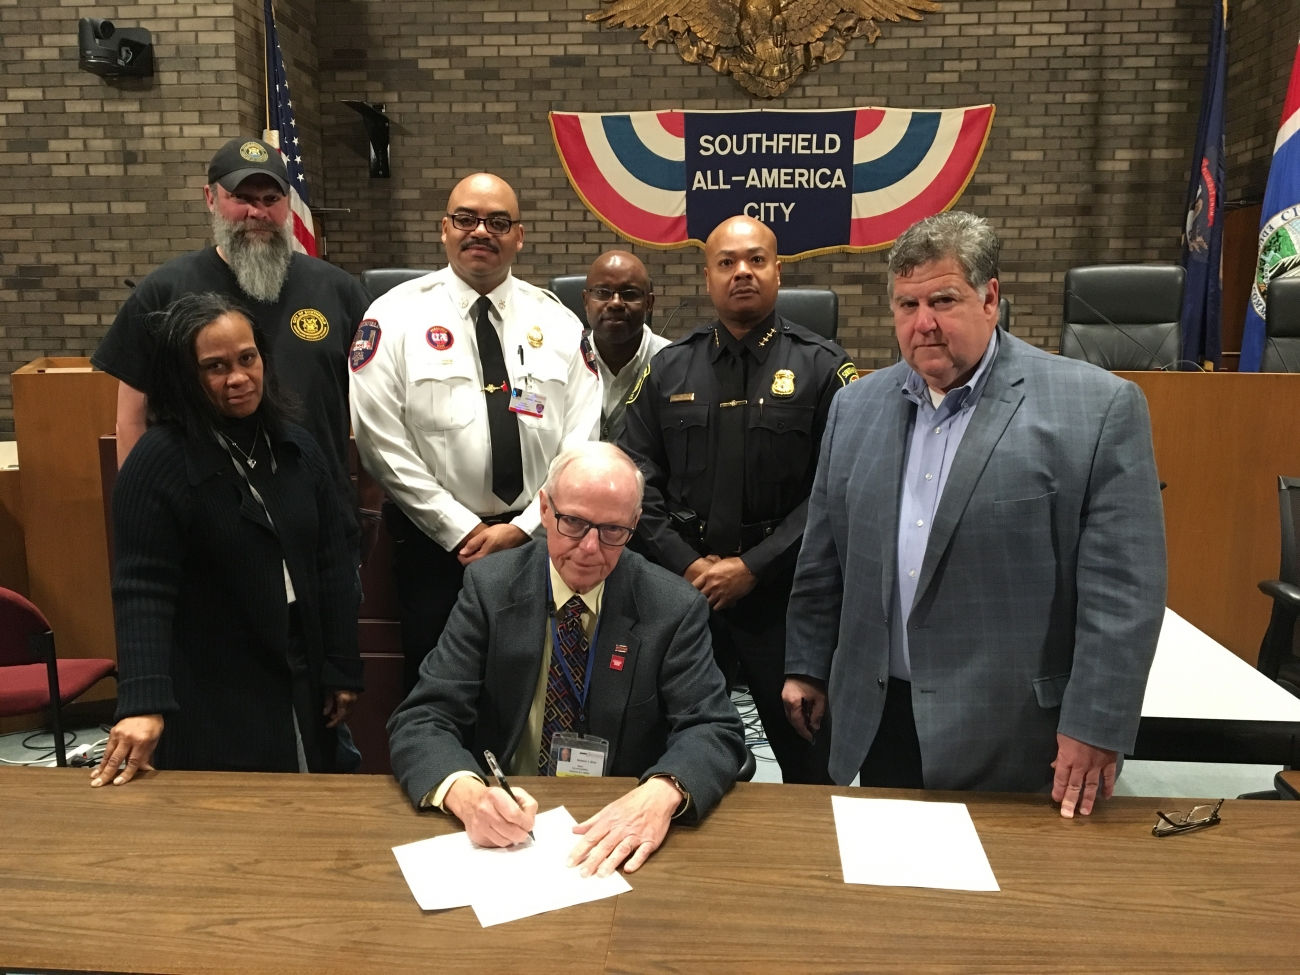 Mayor Siver (seated center) signing City of Southfield State of Emergency Proclamation